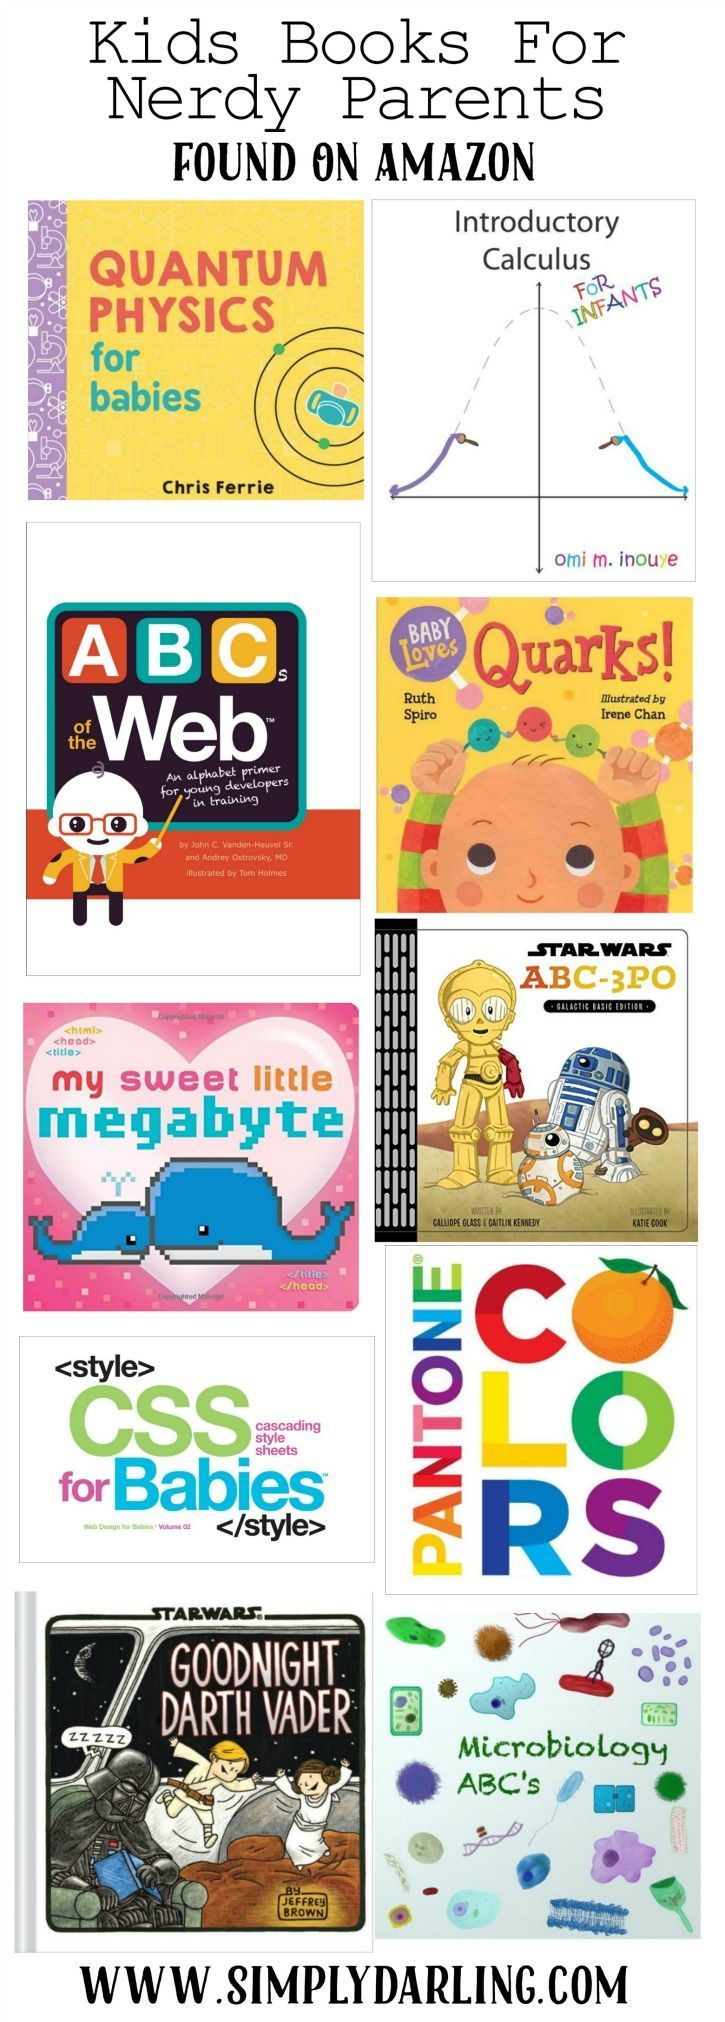 Baby Gifts For Nerdy Parents : Best adoption images on open